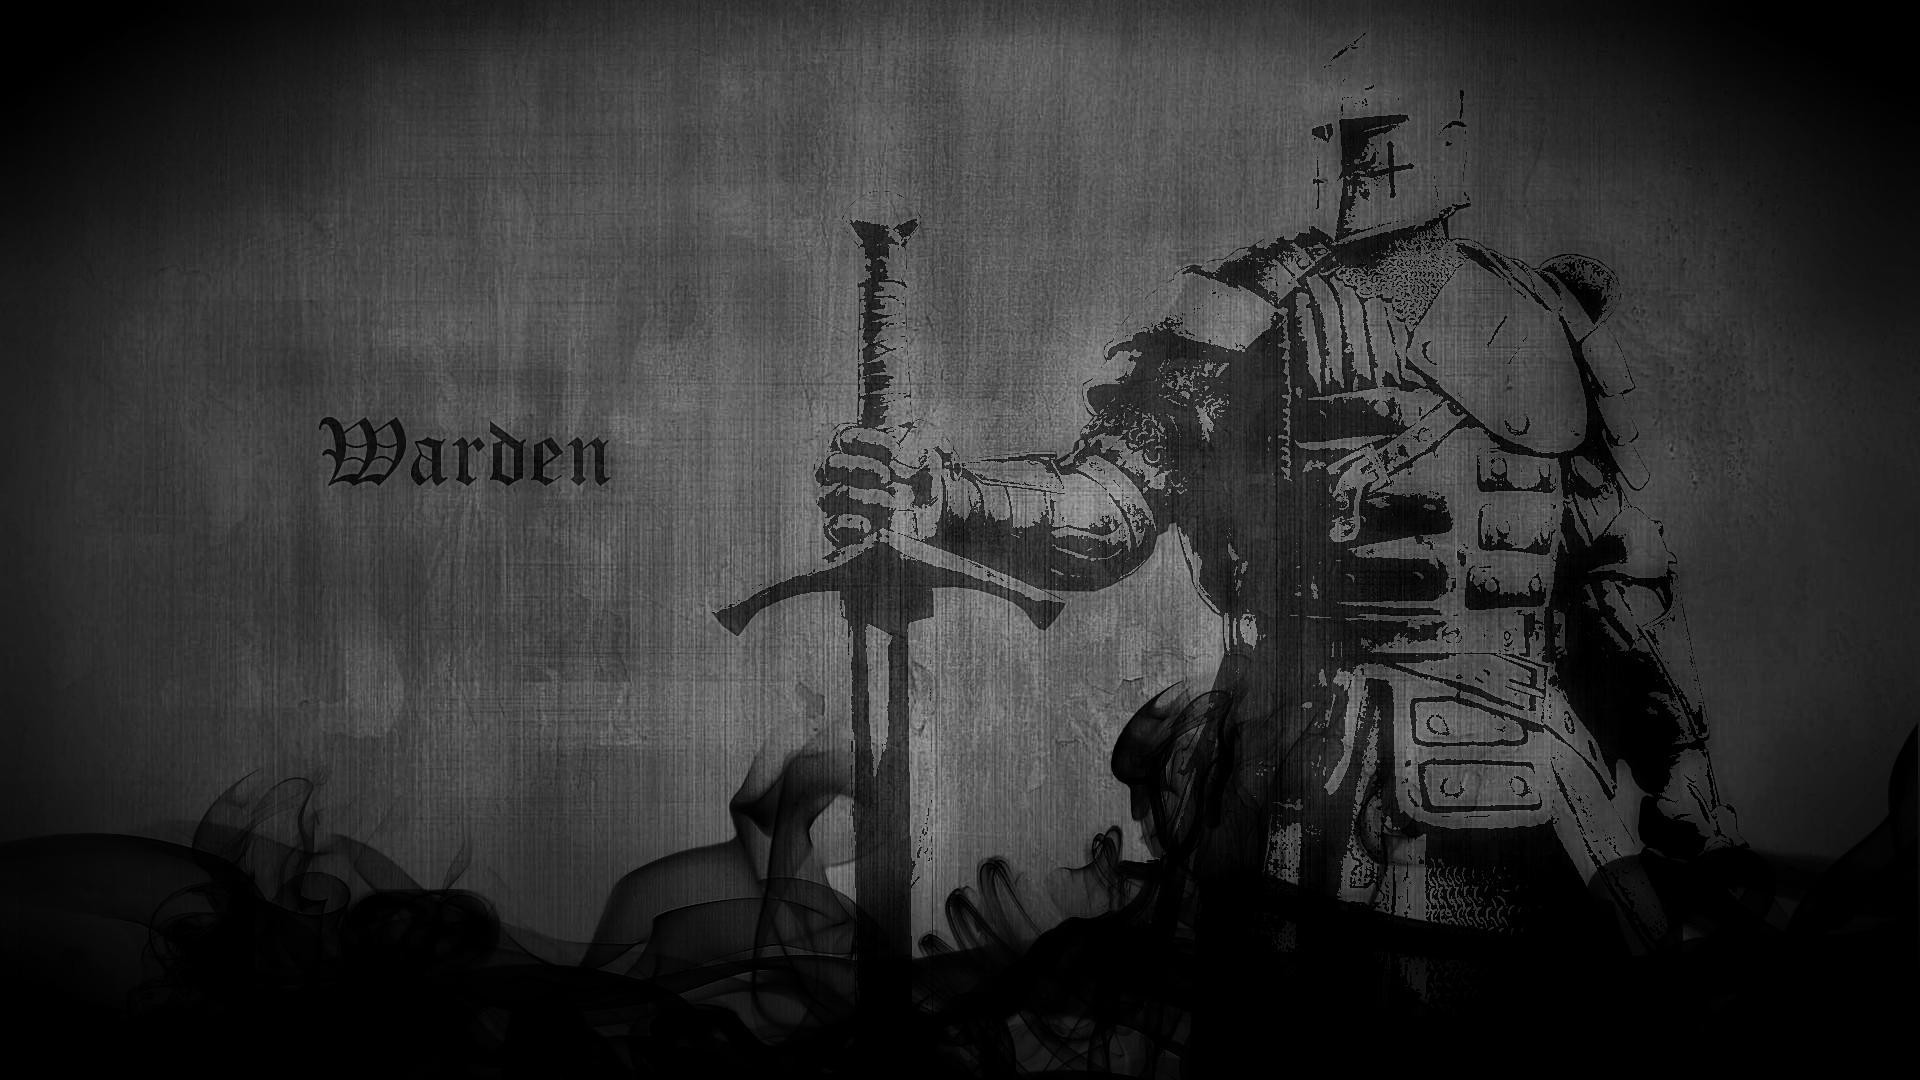 For Honor HD Wallpaper